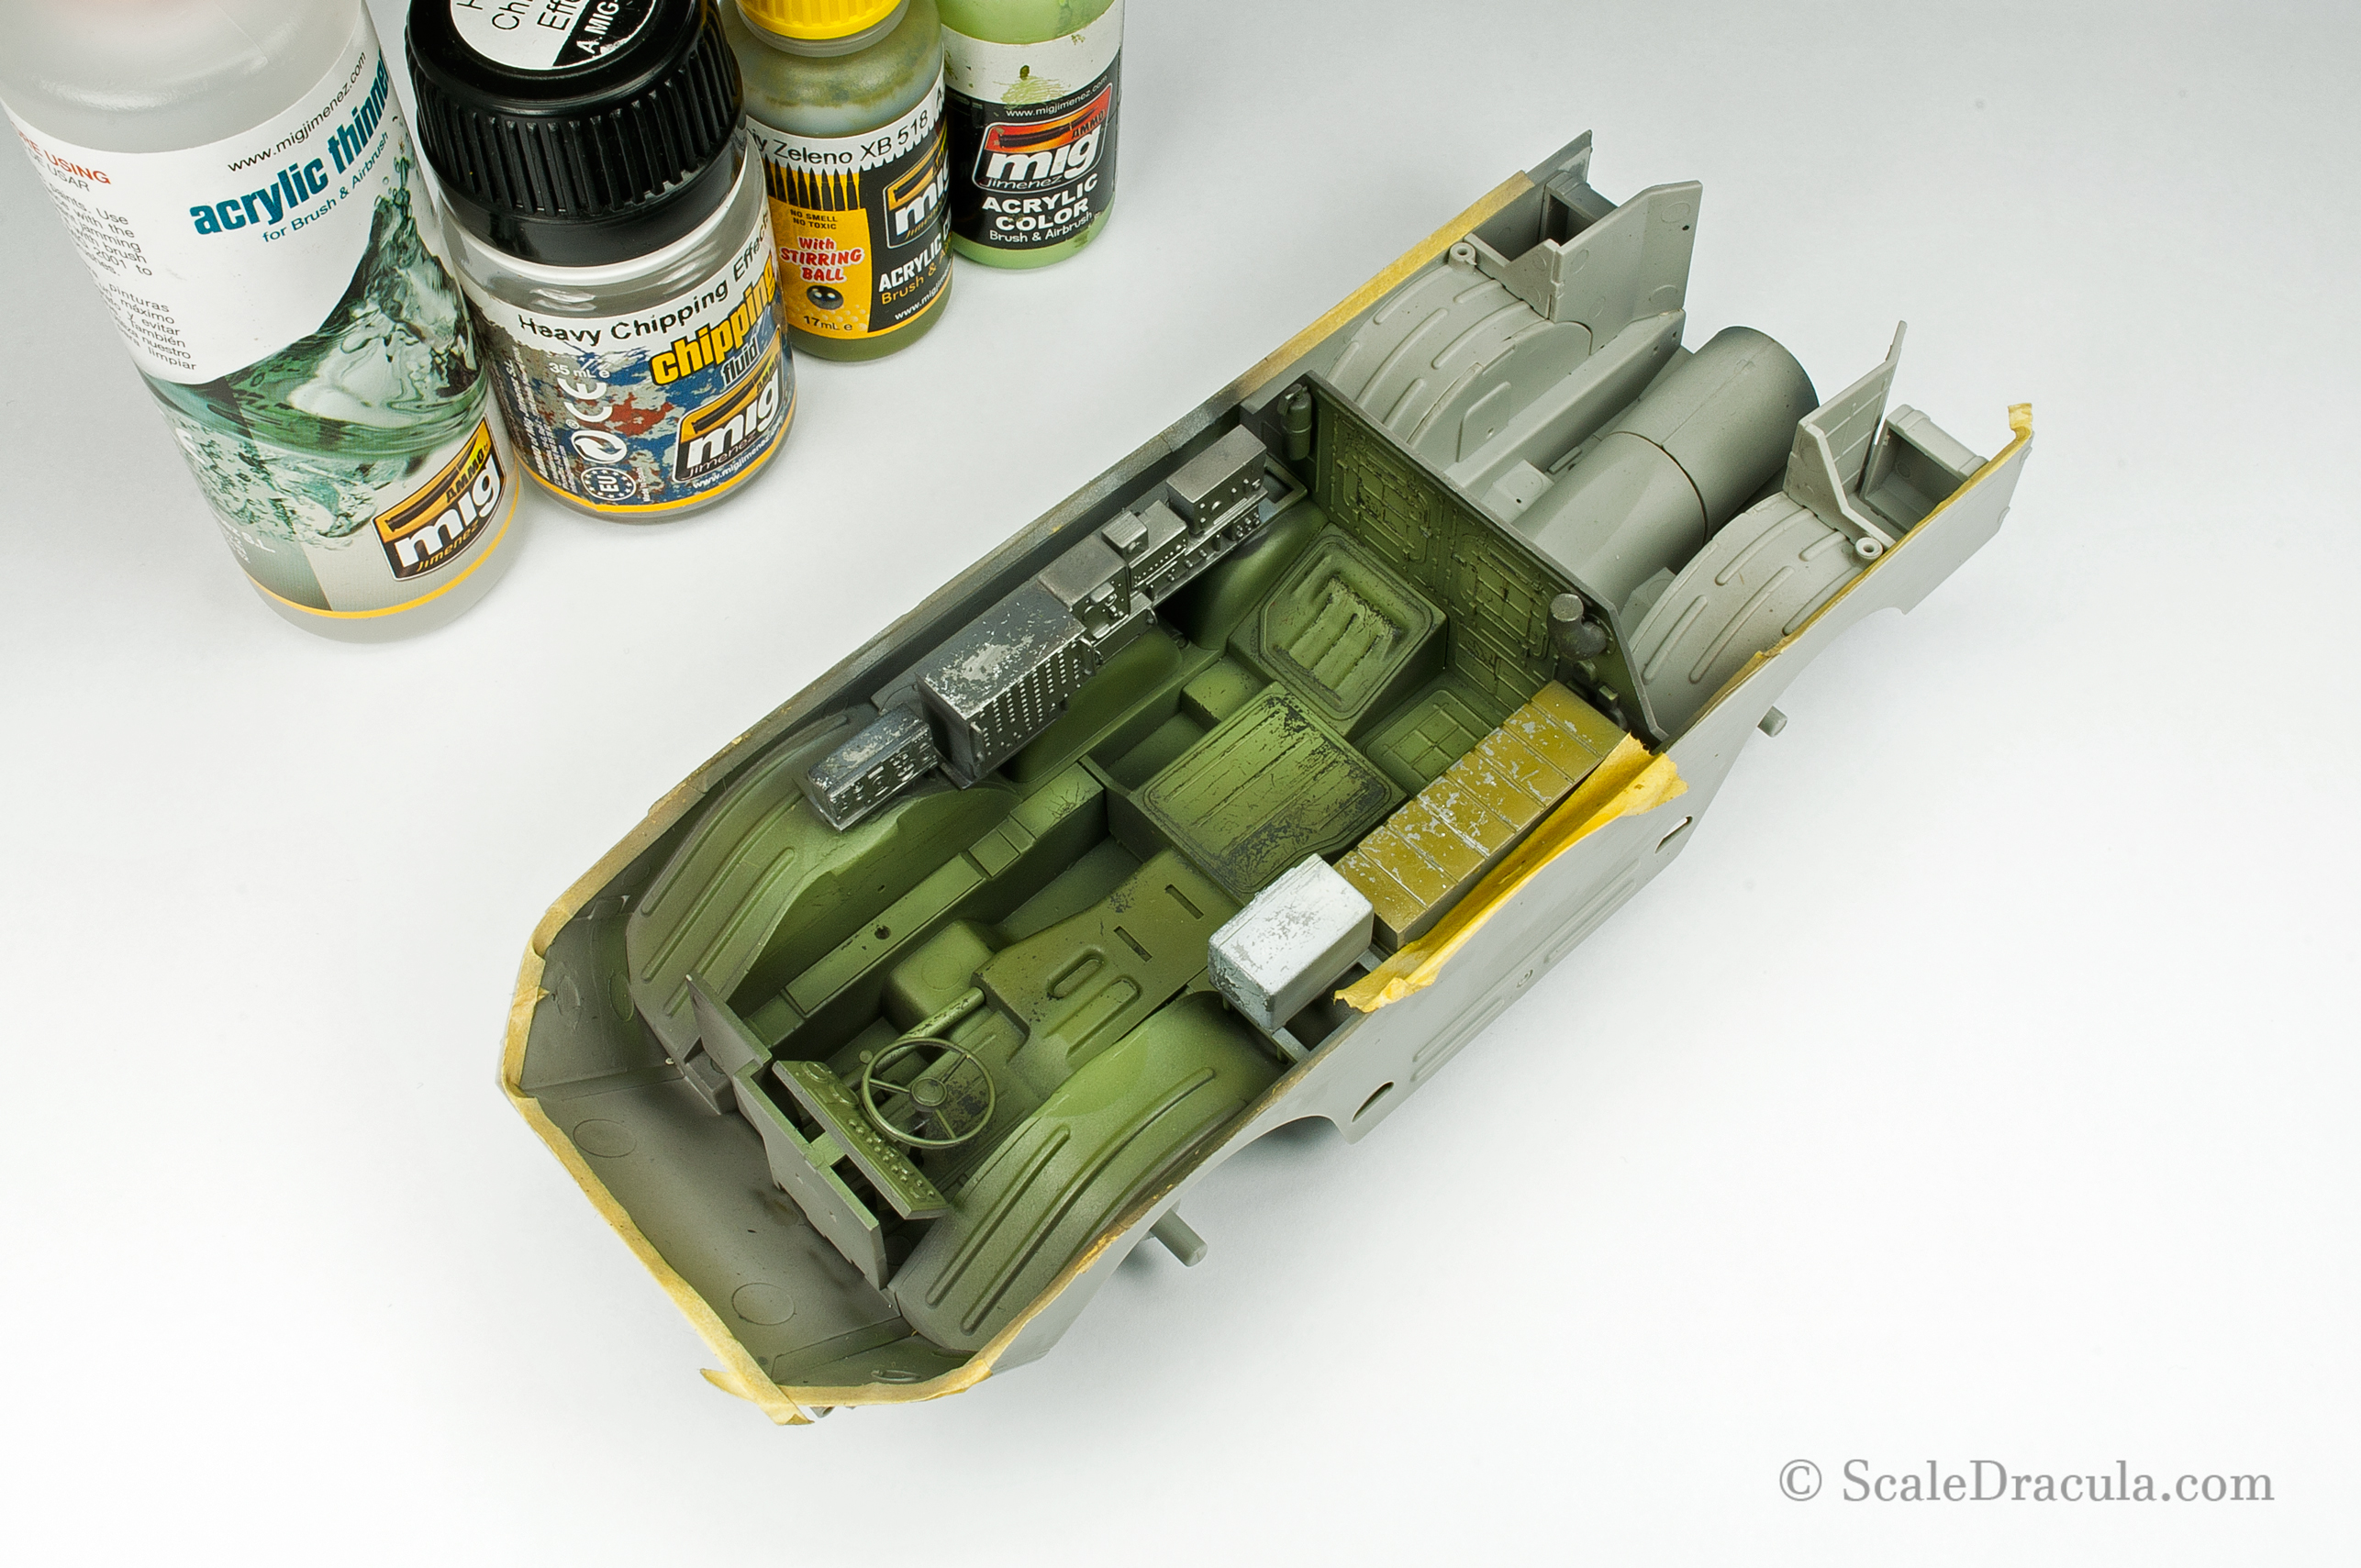 Base coat with chipping, BRDM-2 by Trumpeter